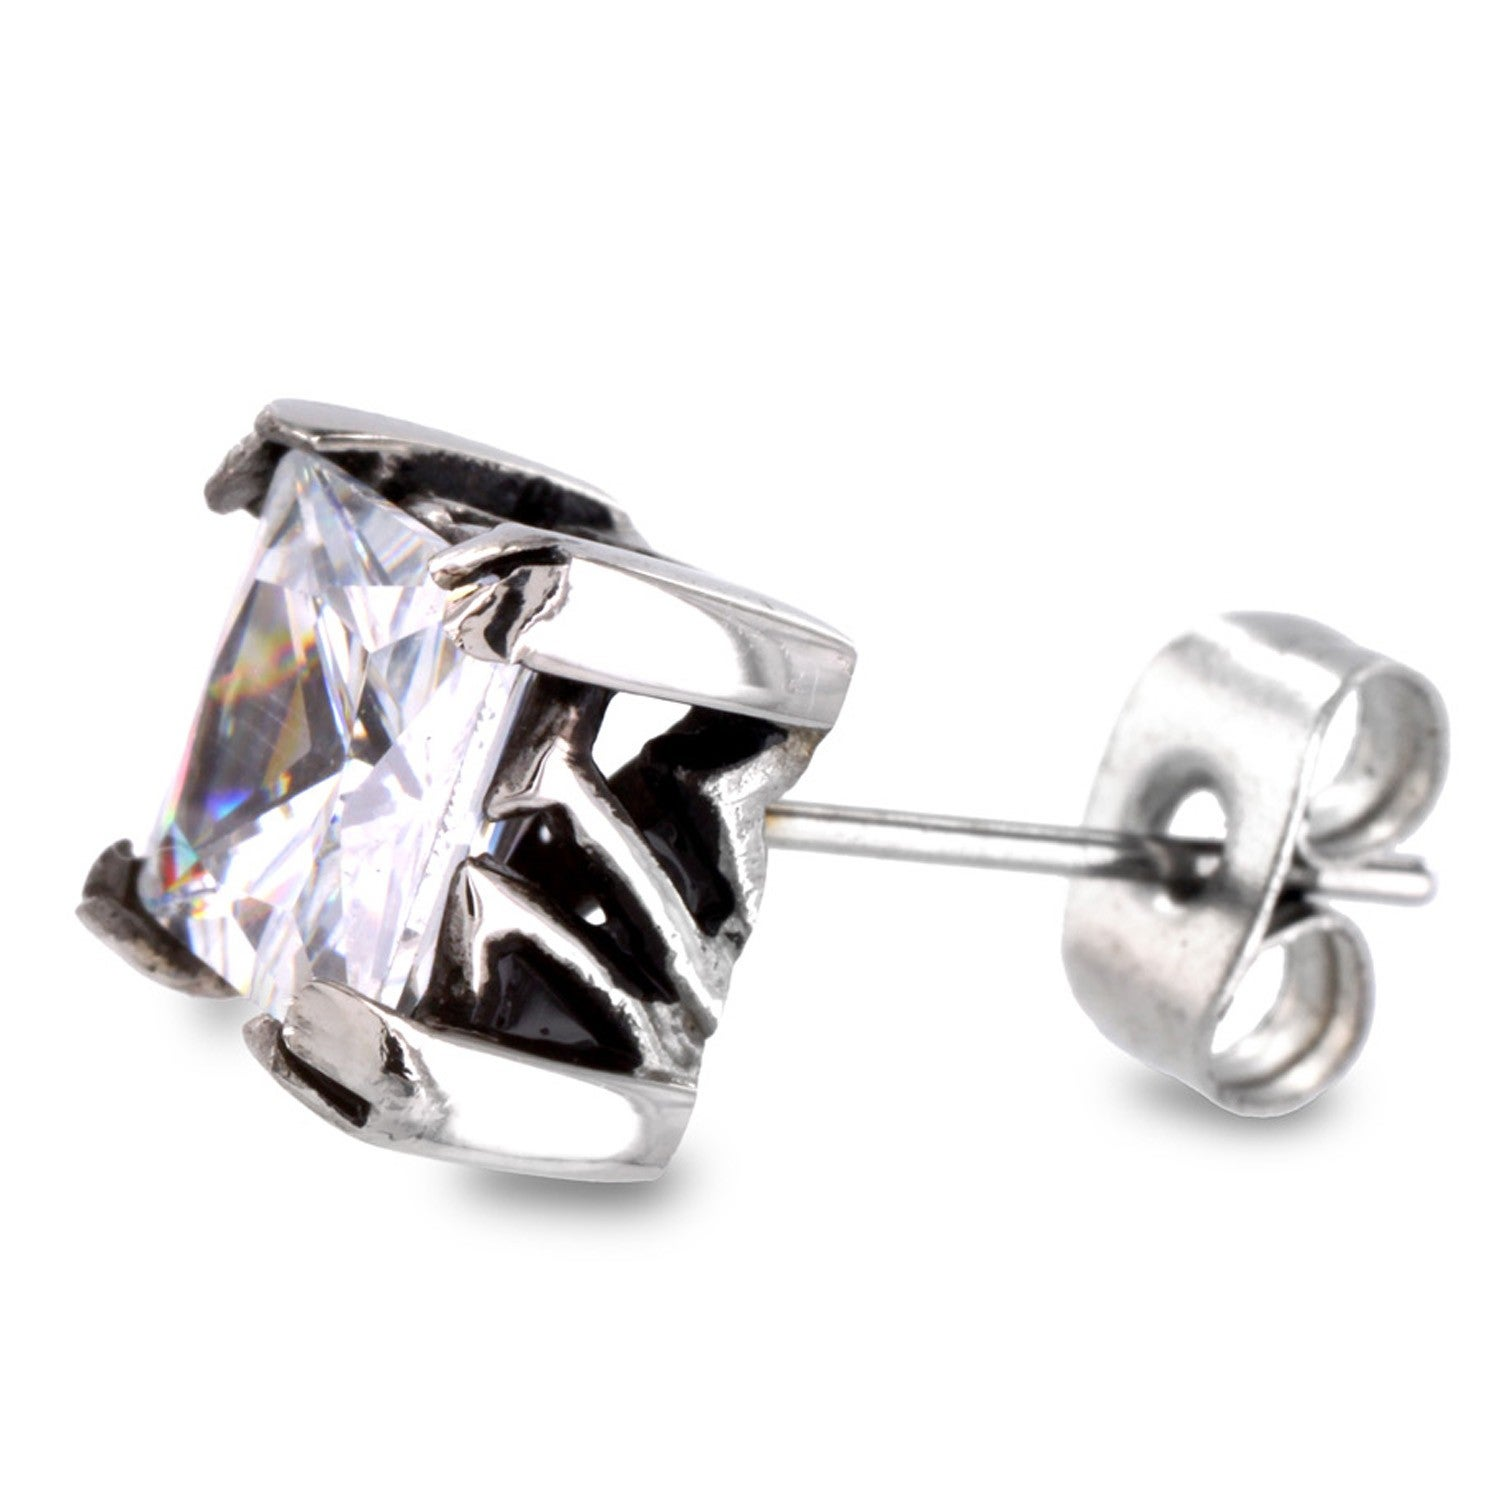 Shop Stainless Steel Square Cubic Zirconia Stud Earrings White